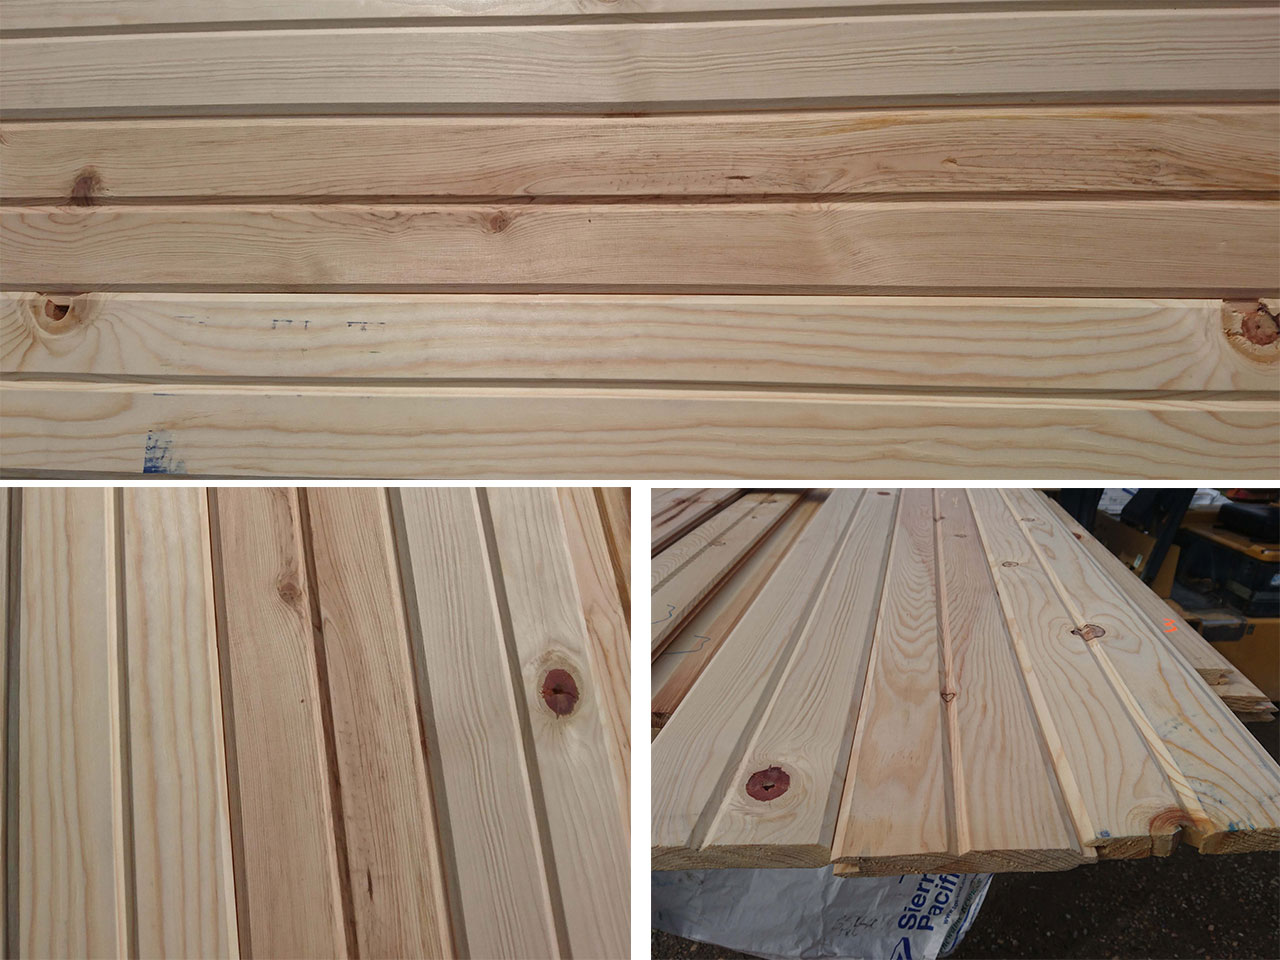 Wood Siding Tongue Groove Pine Cedar Cement T1 11 Plywood Lodi Ca